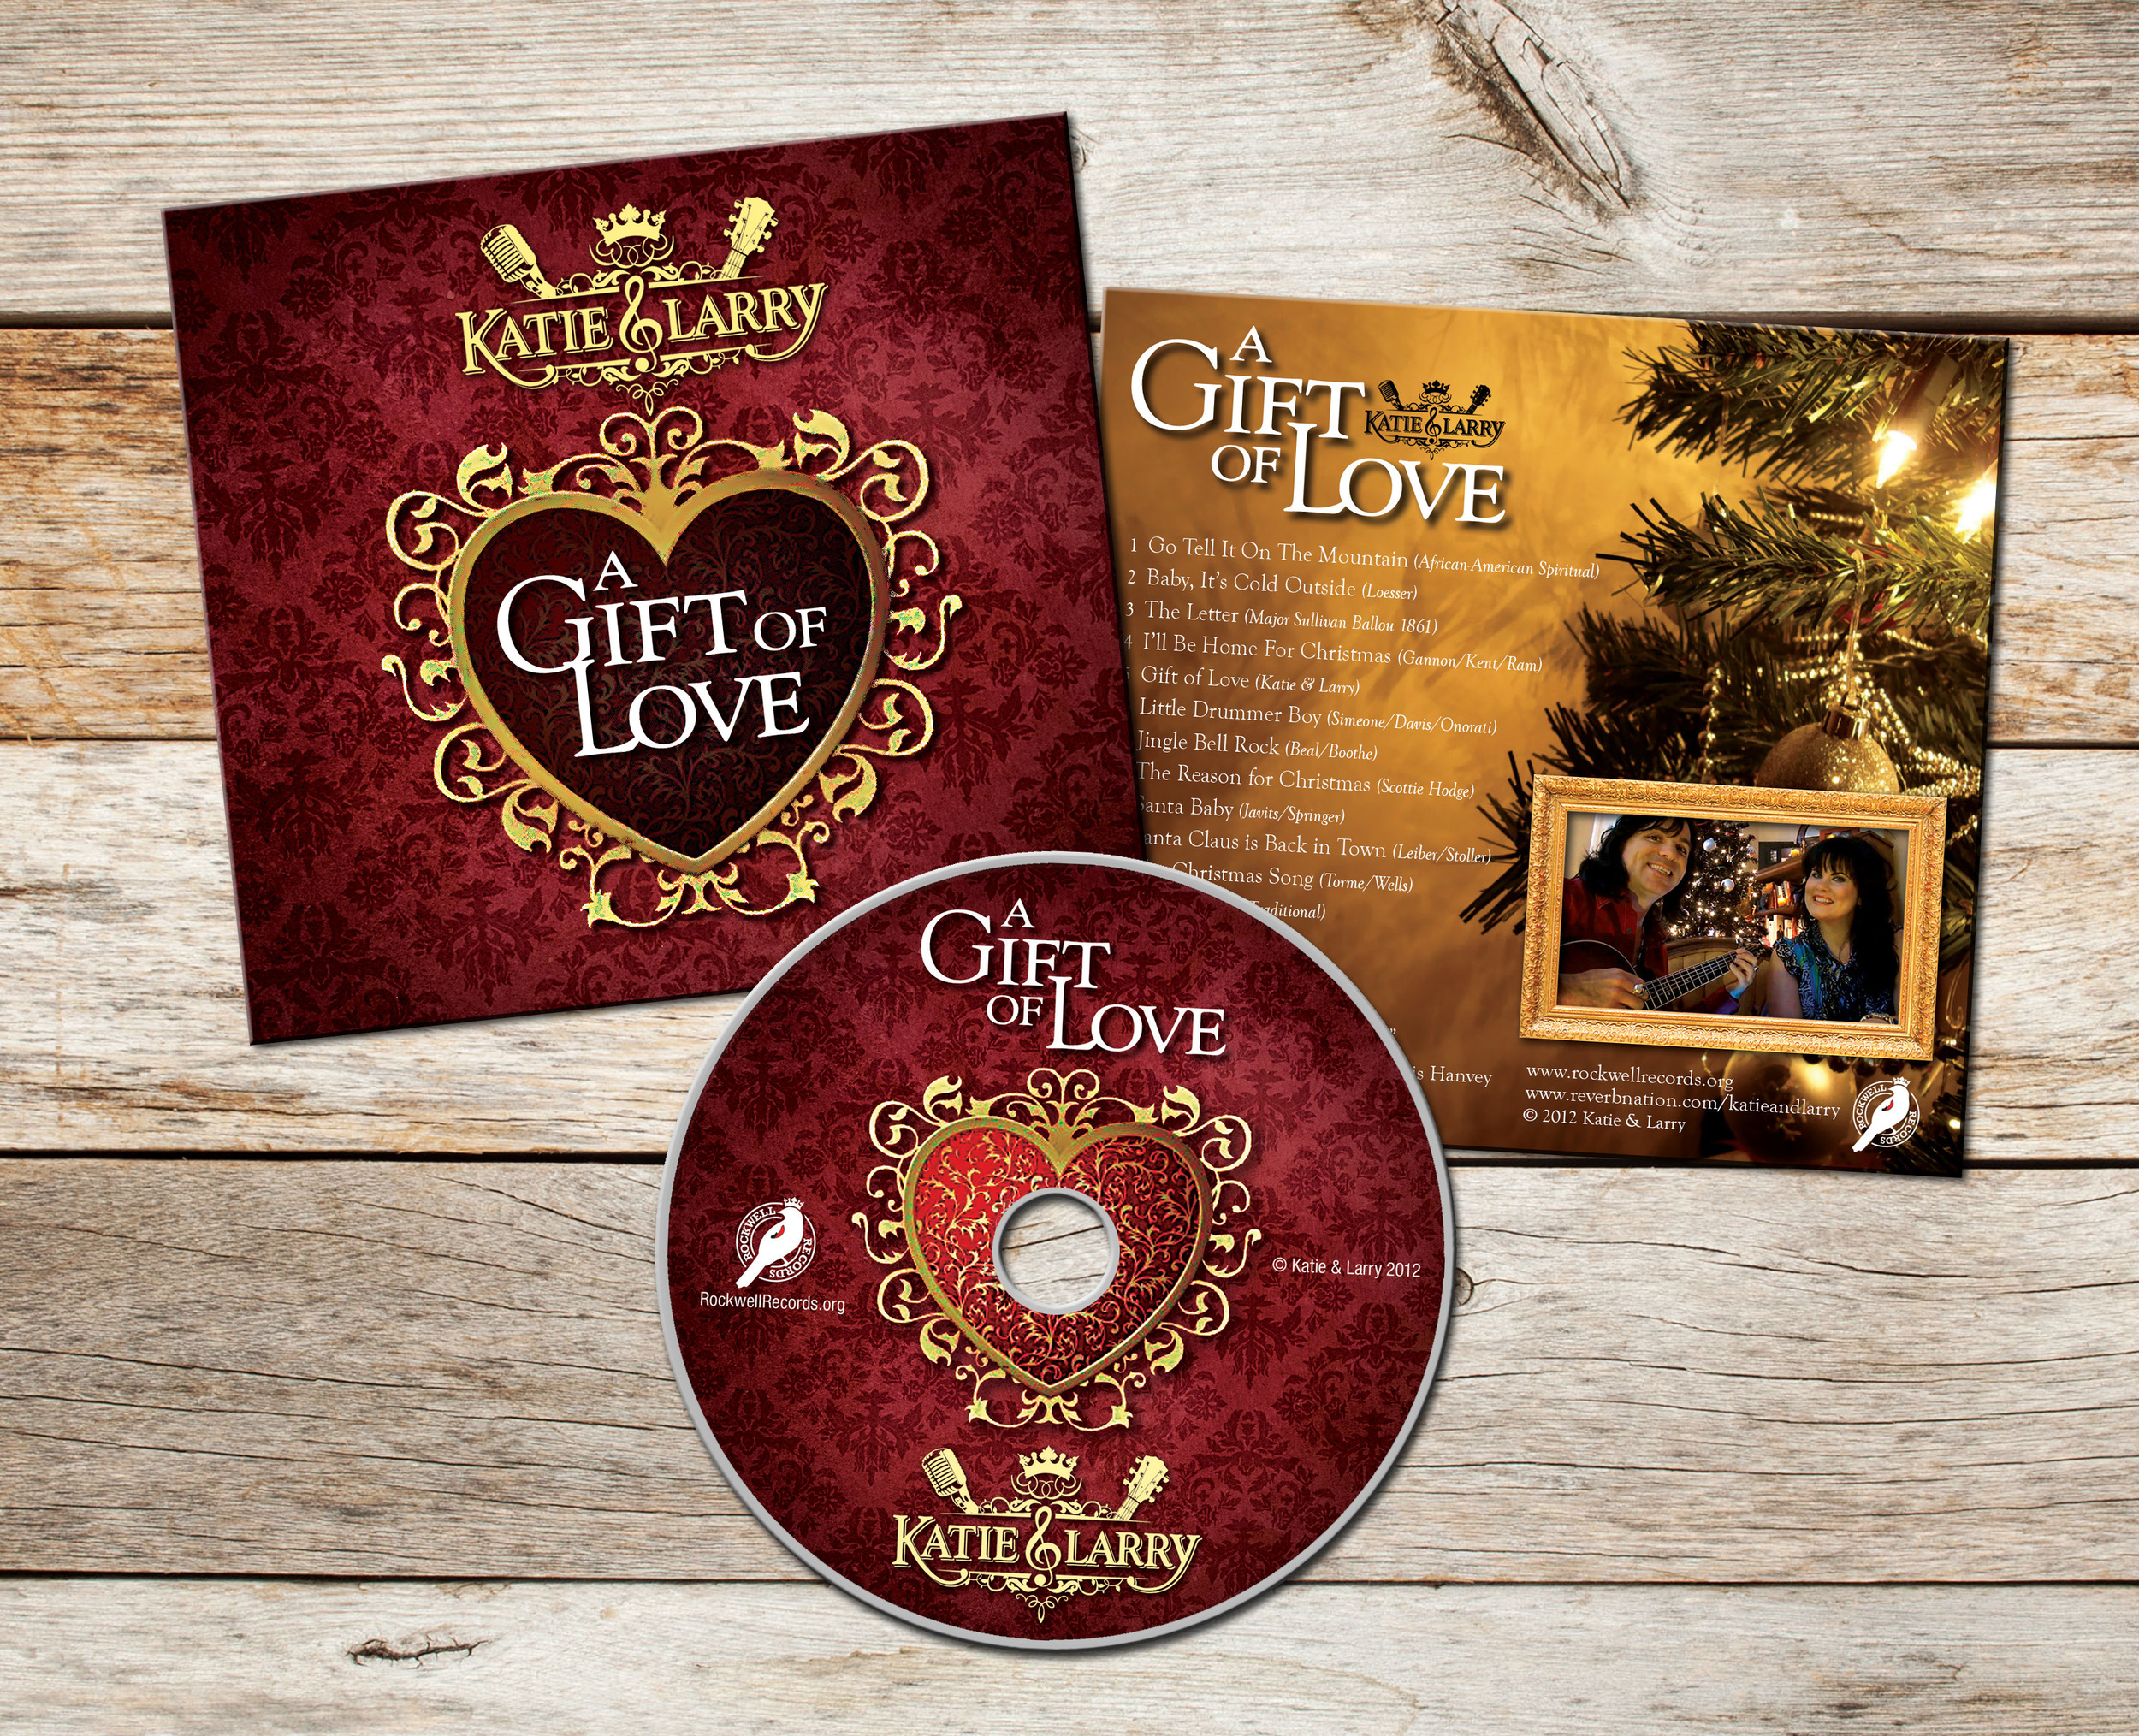 Katie & Larry Christmas CD Packaging and Label